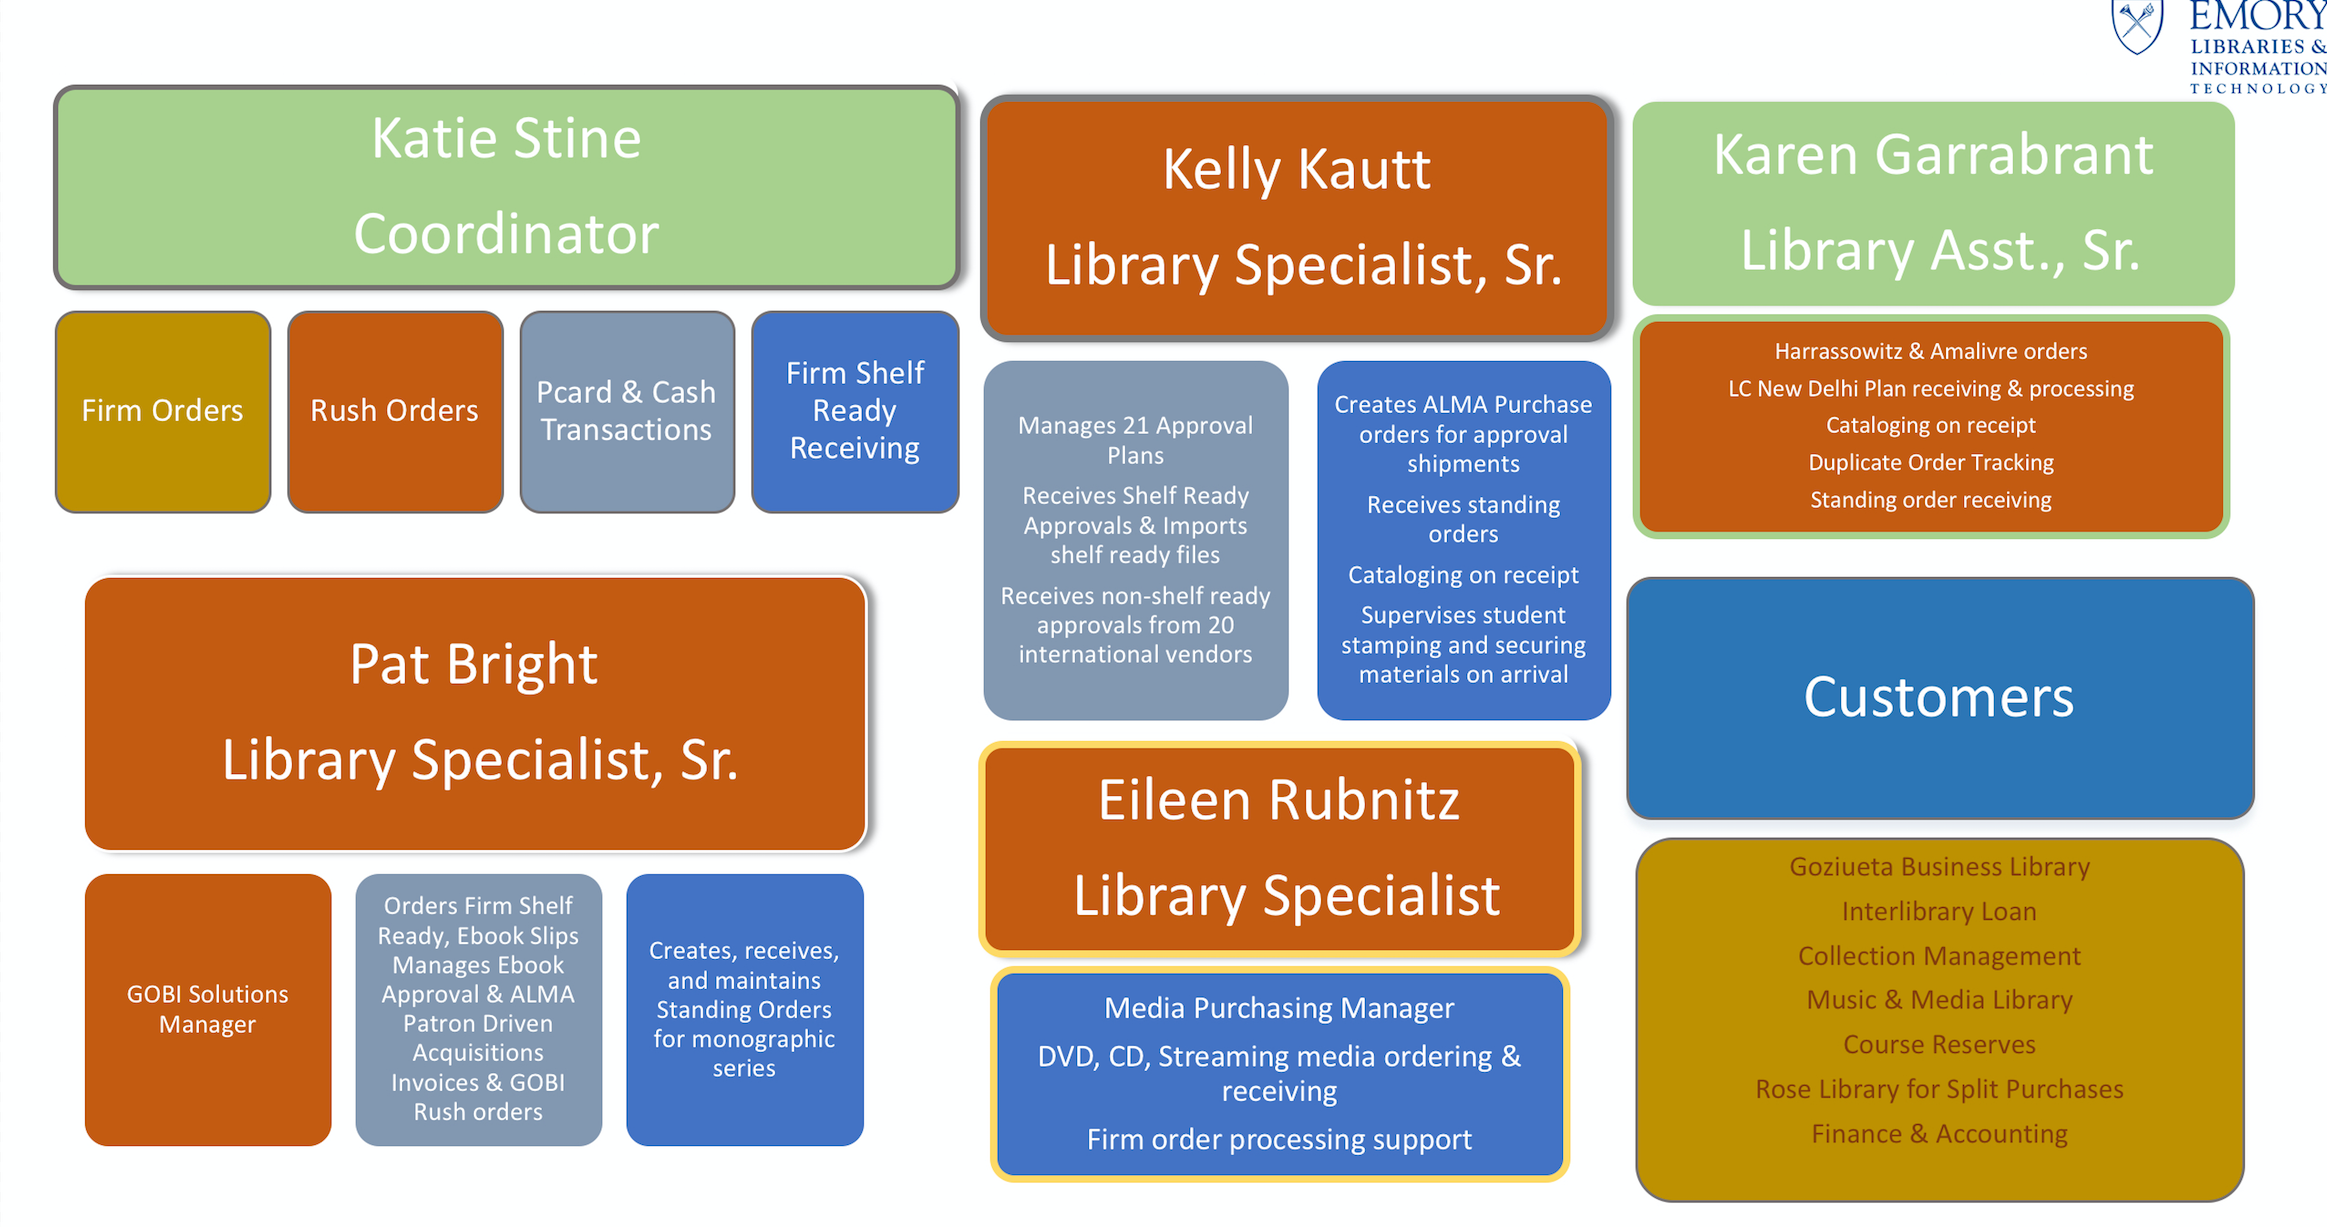 Graphic Listing of Roles and Responsibilities of Staff